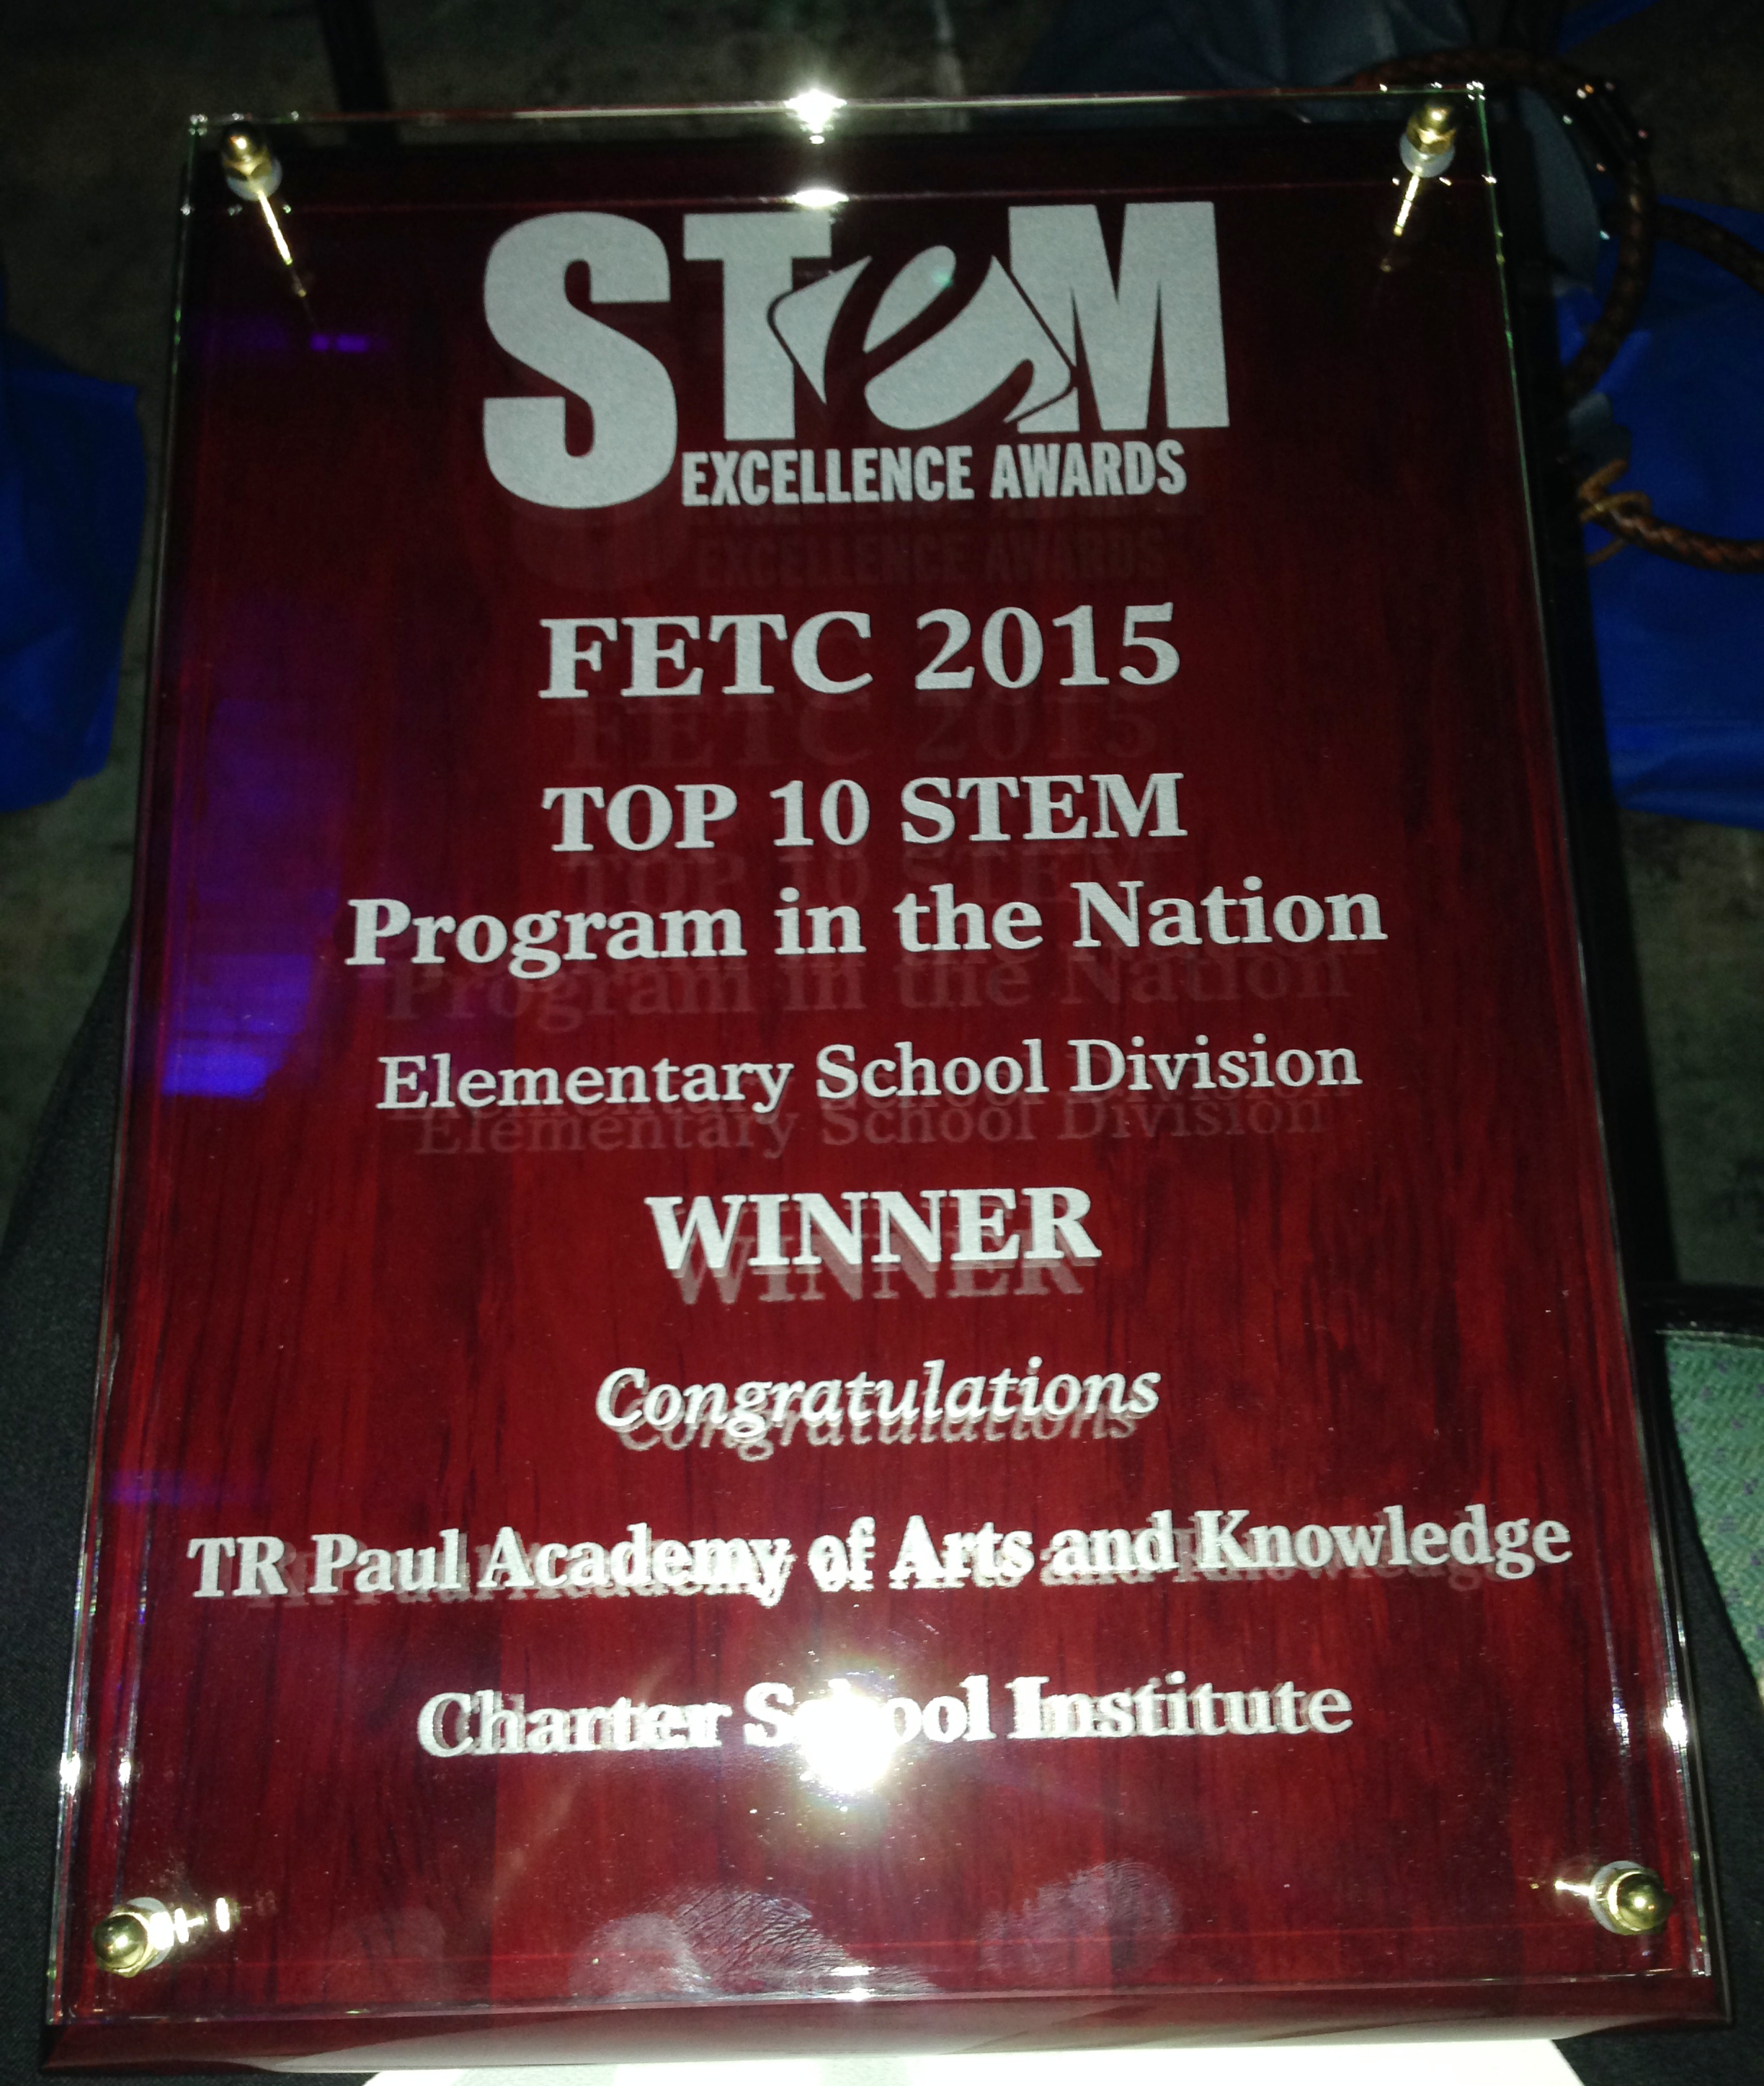 Stem School Program: T.R. Paul Academy Of Arts And Knowledge Recognized As The